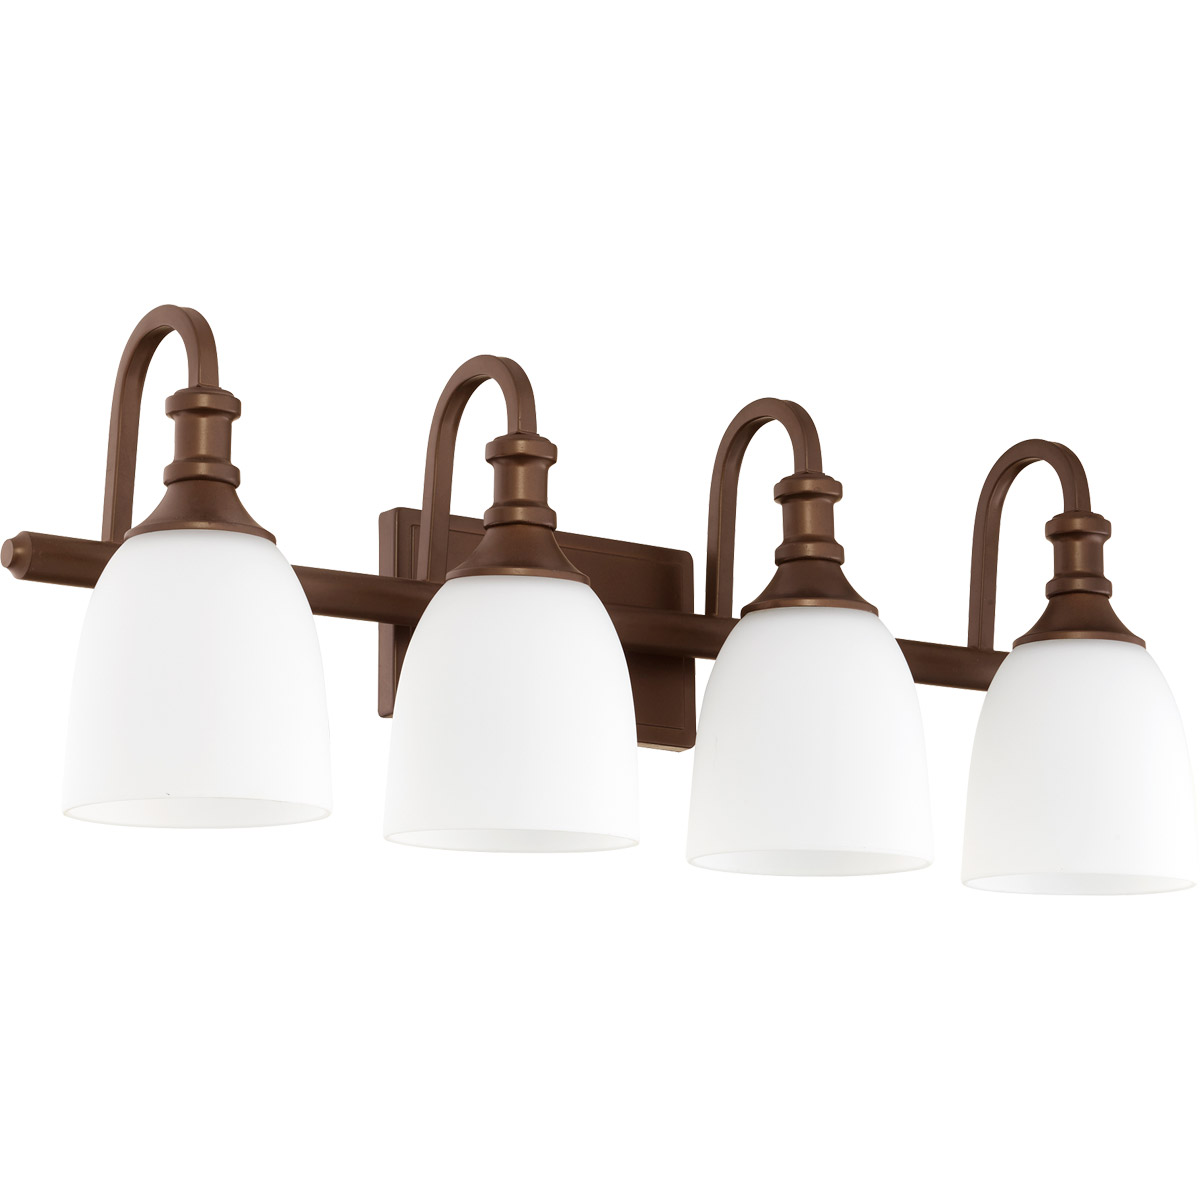 Quorum Bathroom Lighting quorum international 5011-4-86 richmond bathroom vanity lights